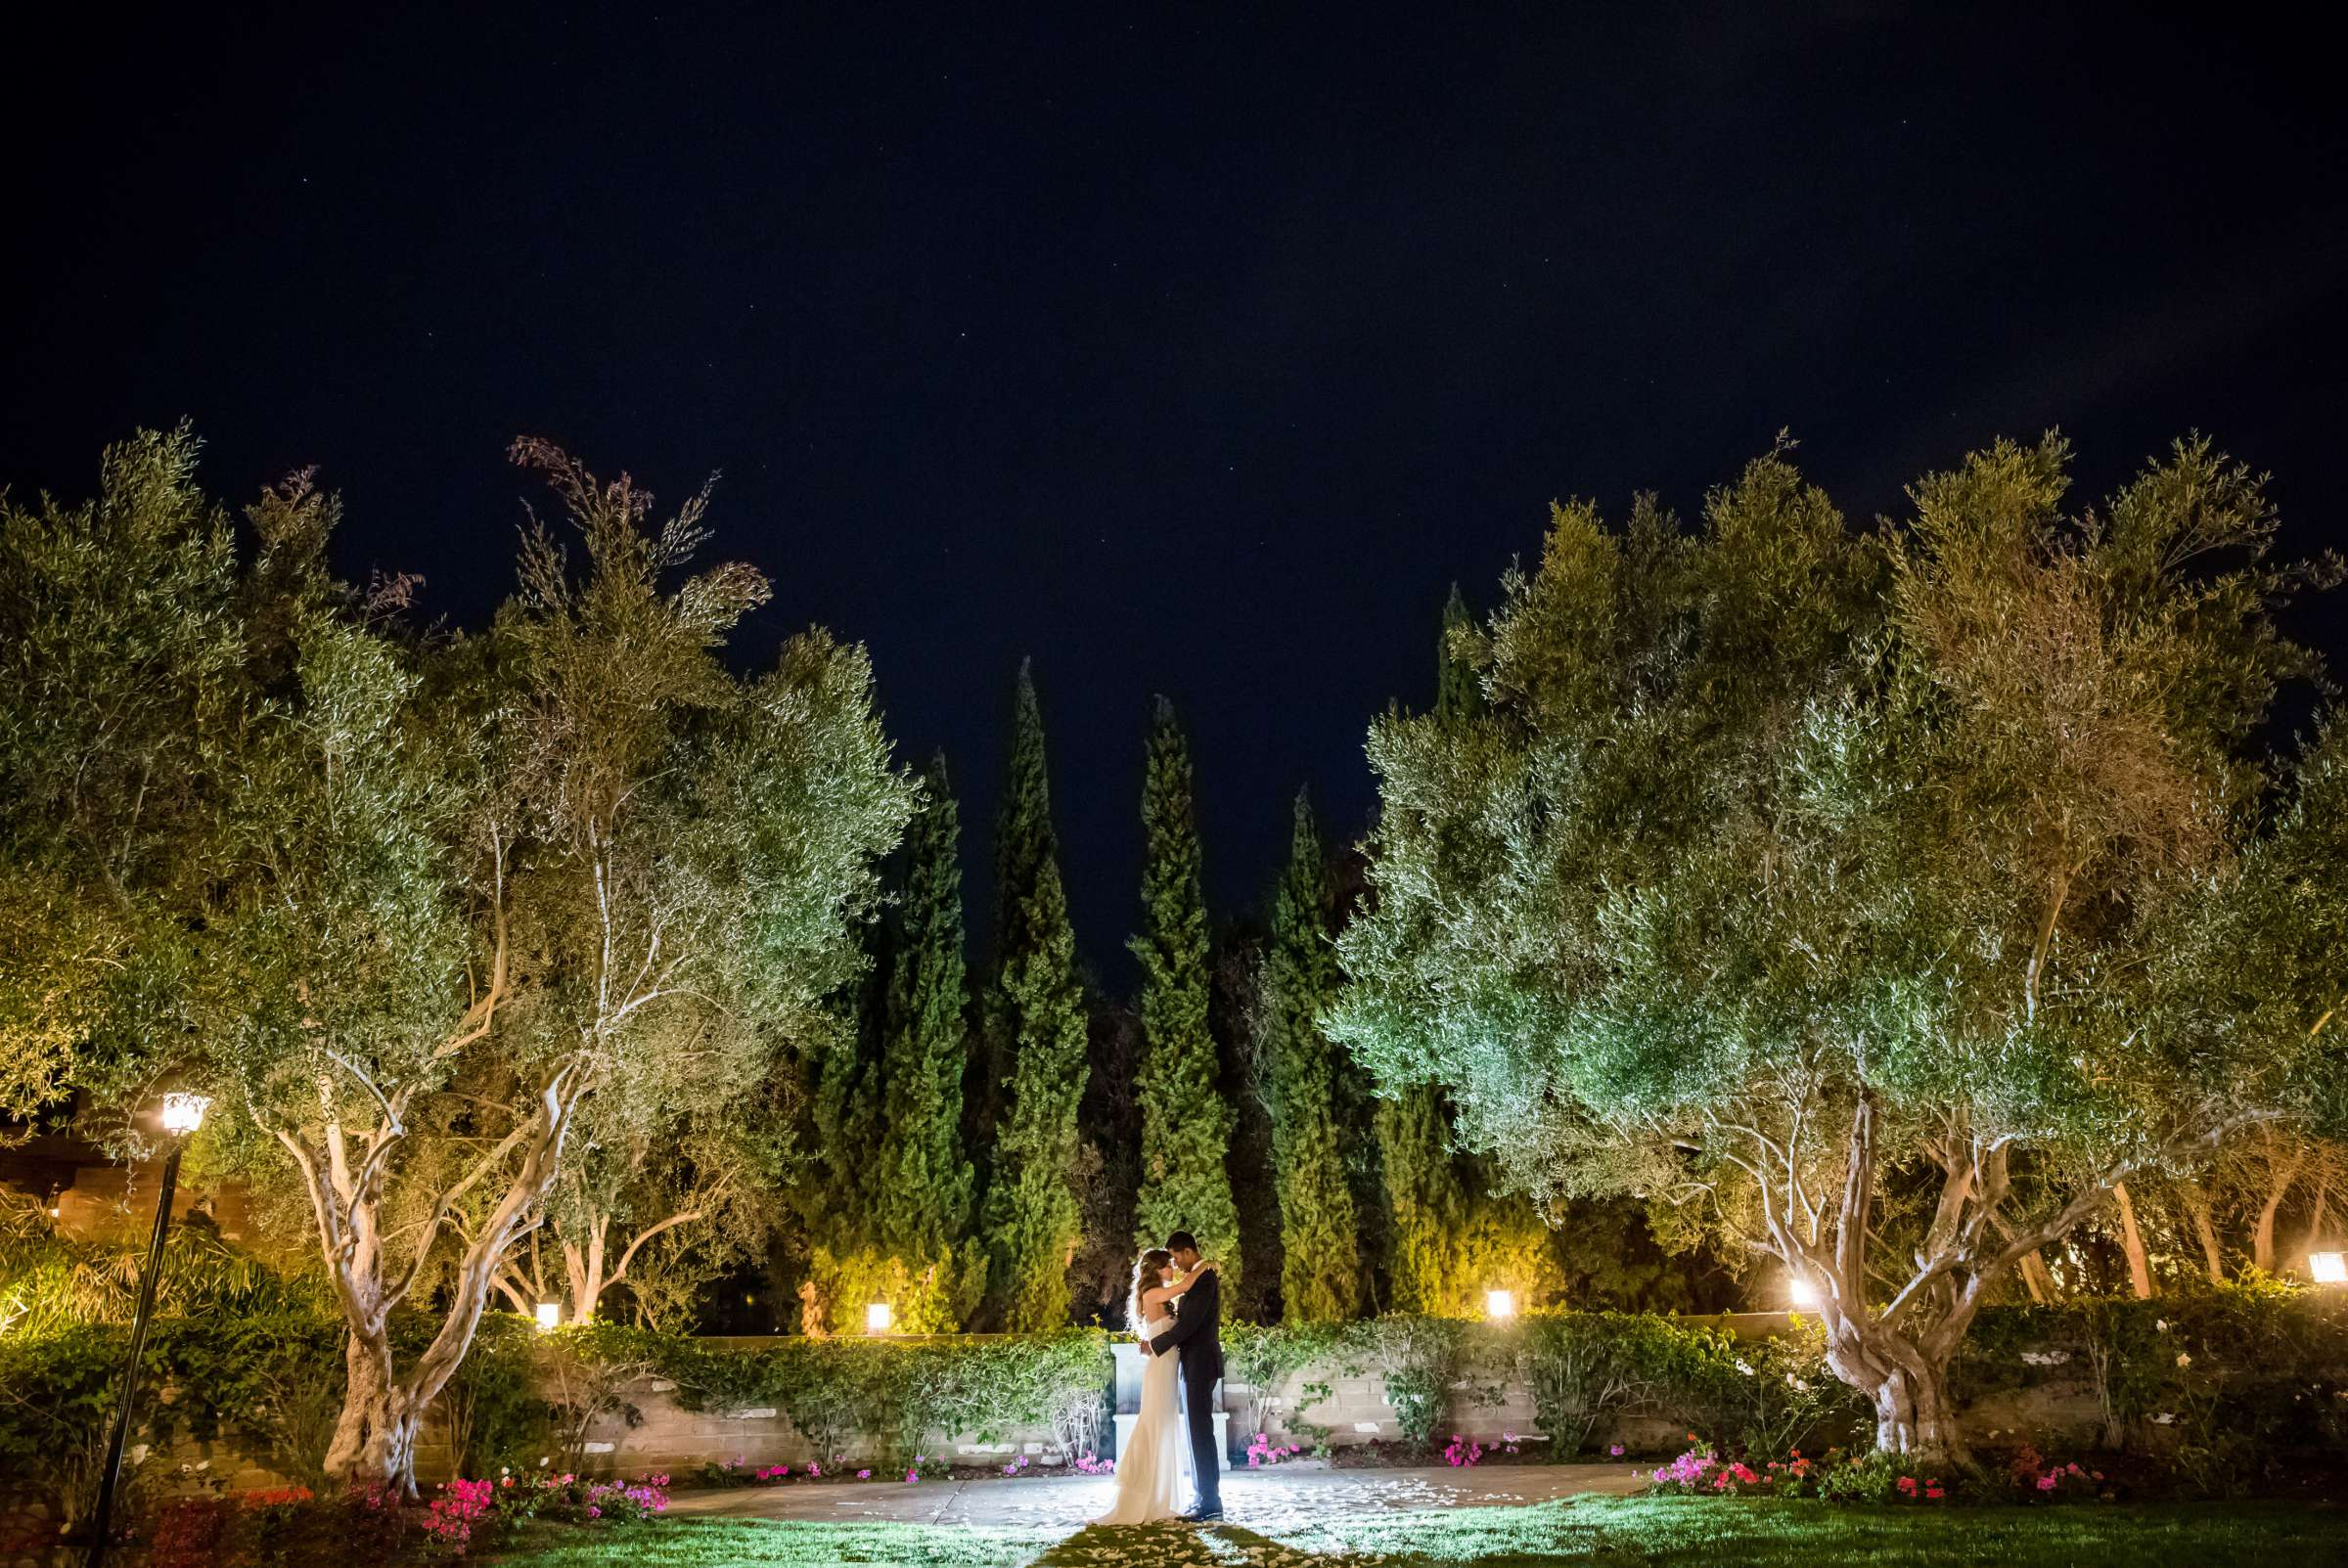 Estancia Wedding coordinated by The Best Wedding For You, Leigh and Sankar Wedding Photo #37 by True Photography